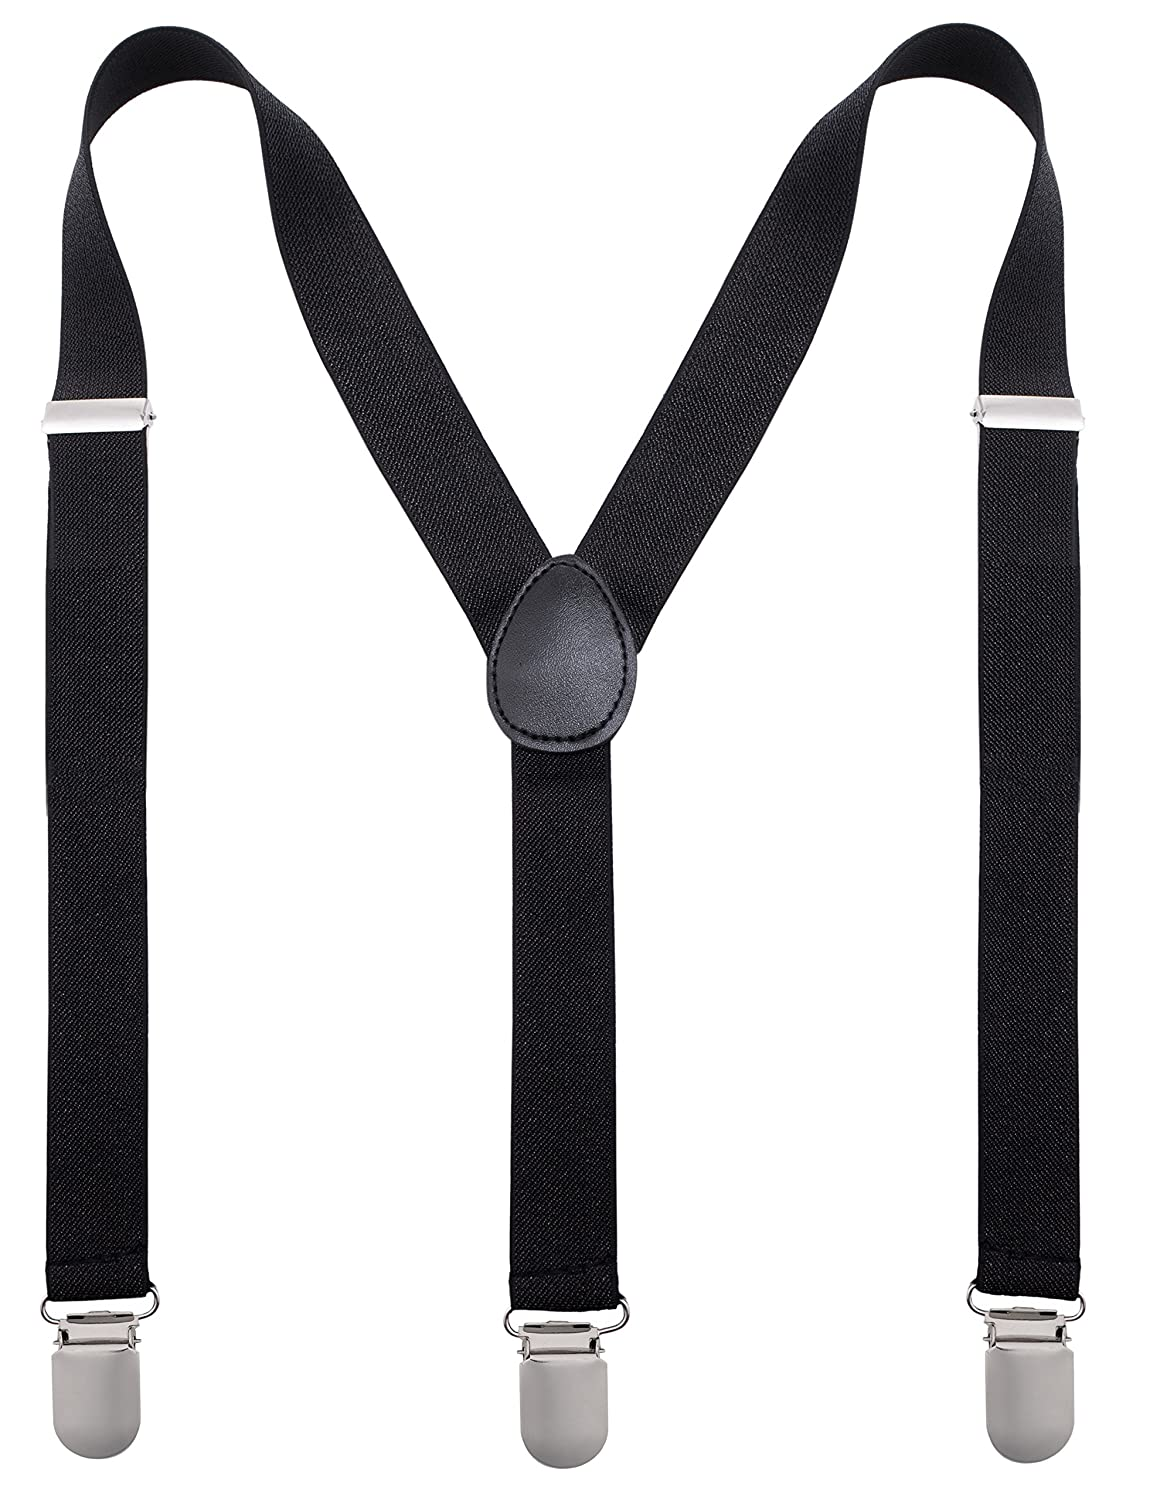 34981b7aa5a Amazon.com  Bowtie   Suspender Sets - Glitter Suspenders   Metallic Bow Tie  - Black  Clothing